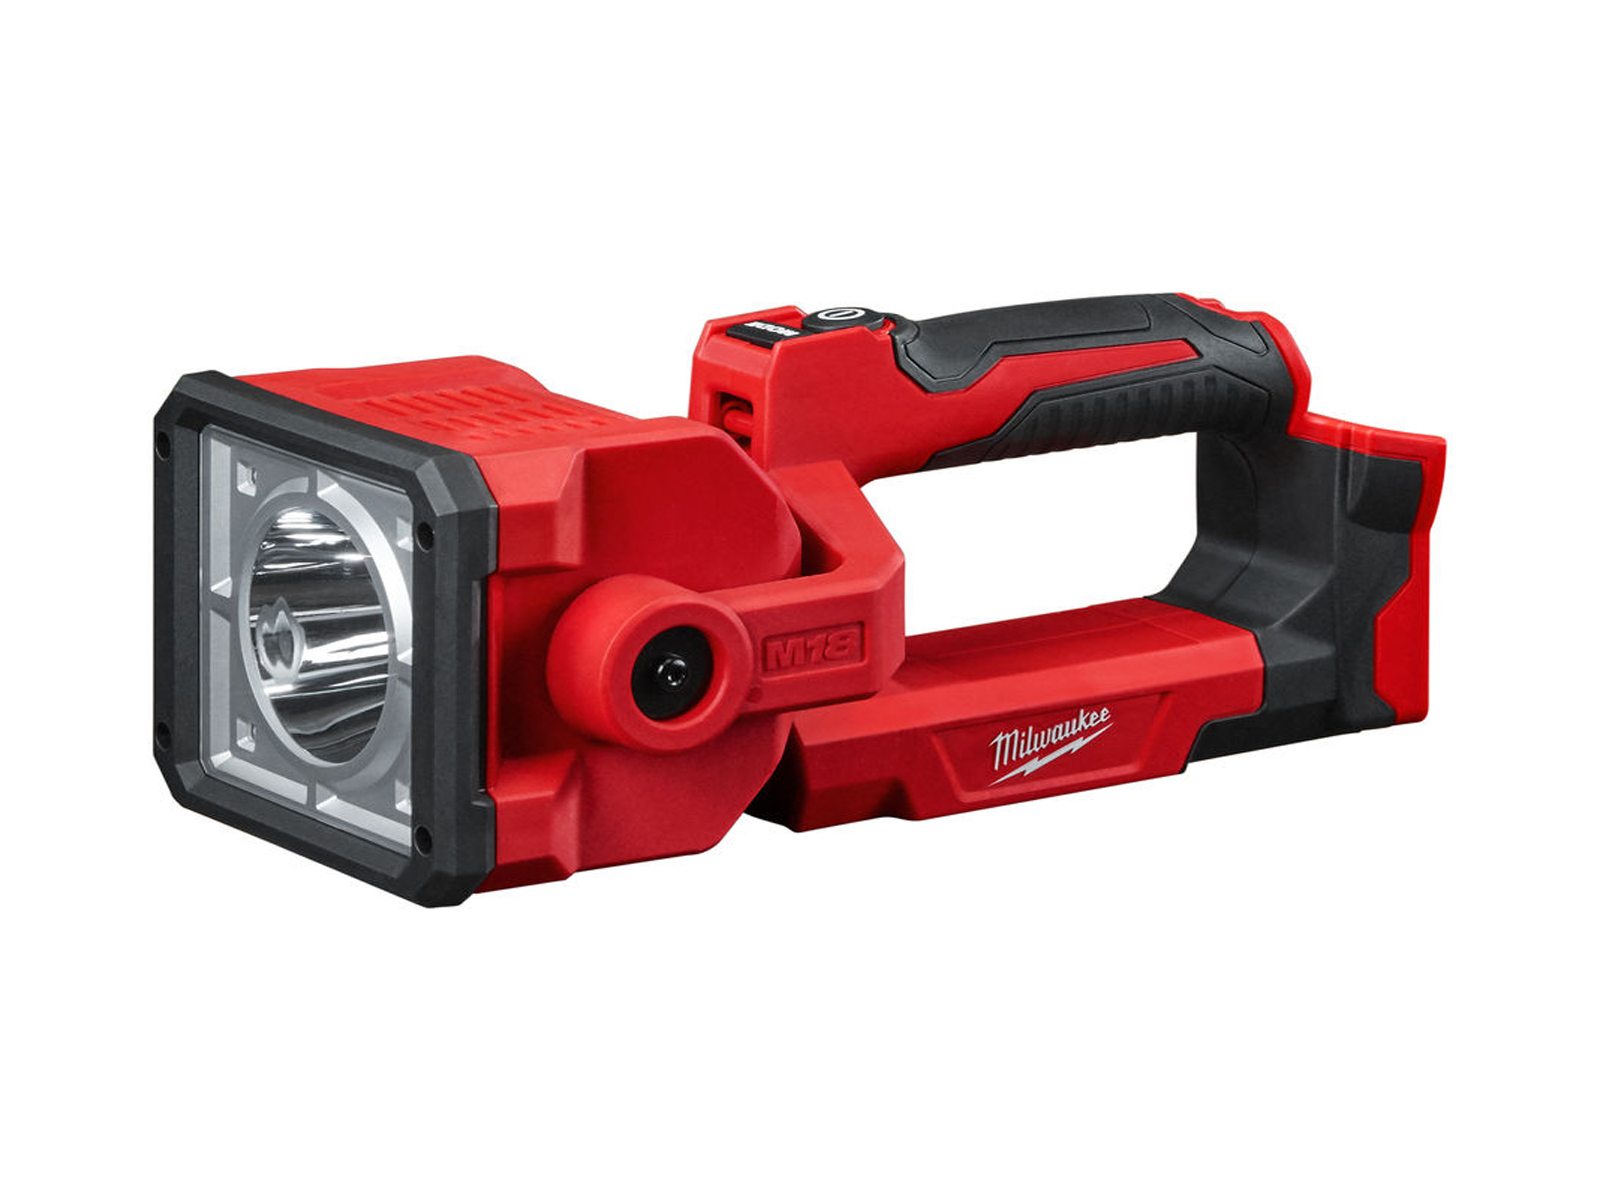 MILWAUKEE 18V 4-MODE LED SEARCH LIGHT 1250 LUMENS - M18SLED - BODY ONLY